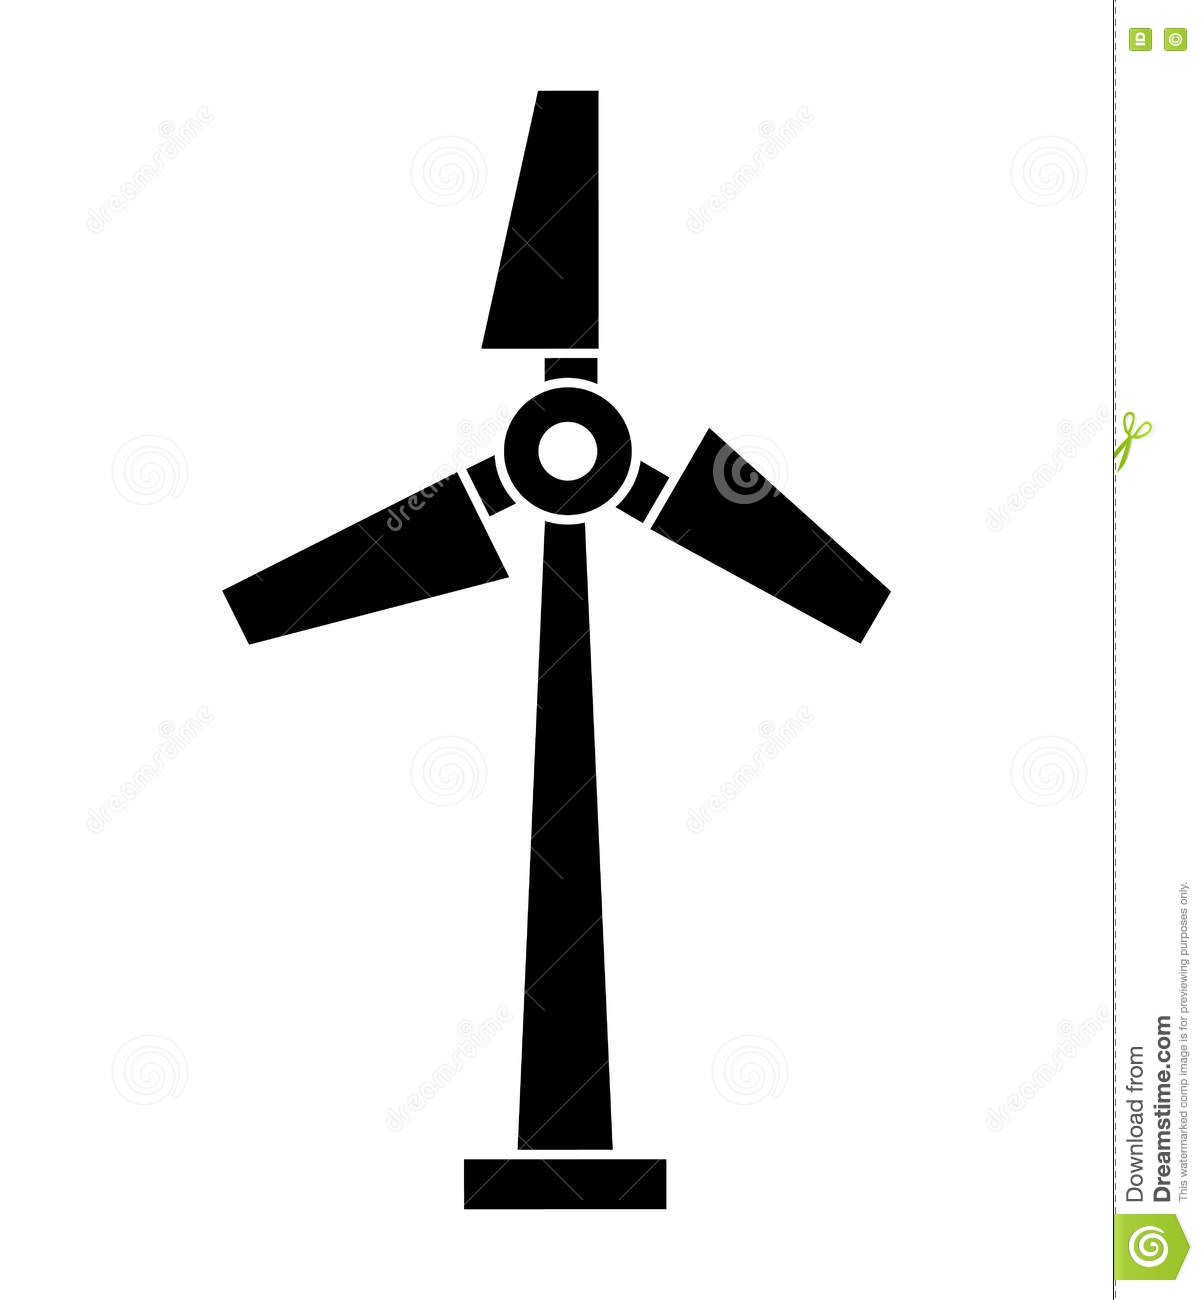 windmill silhouette isolated icon design stock illustration